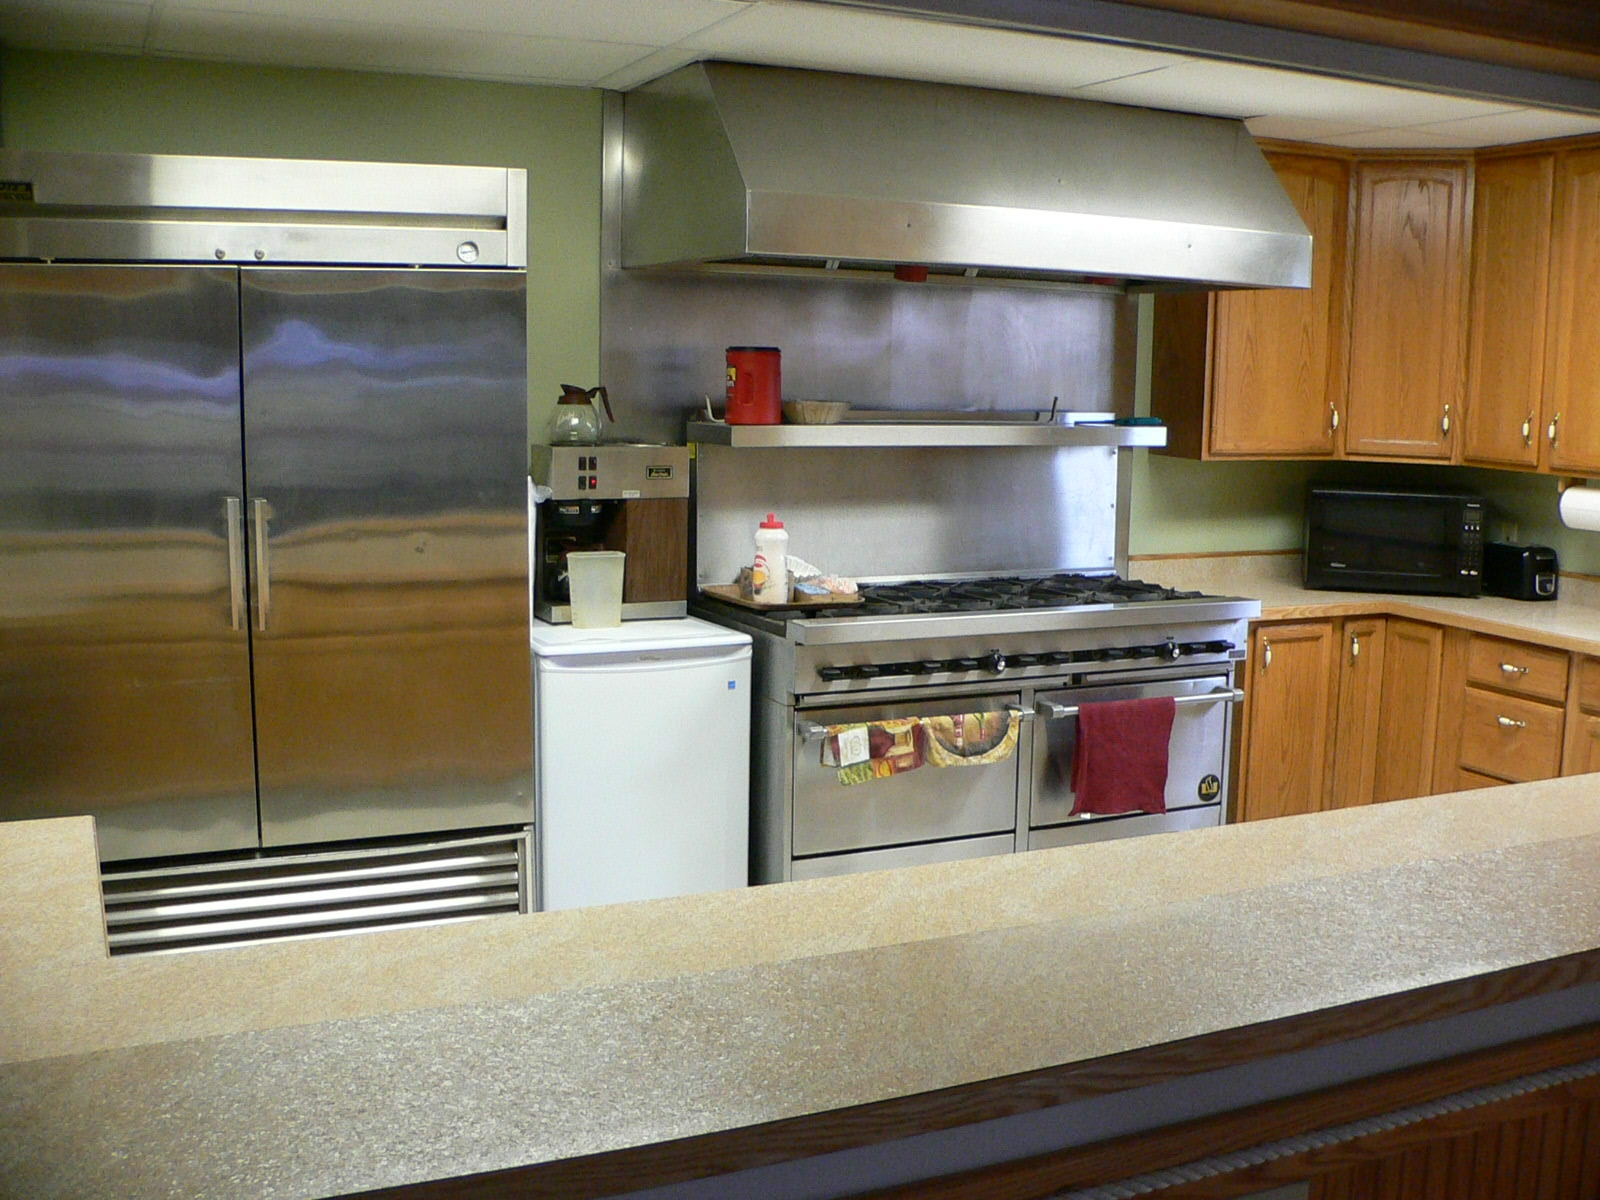 Commercial Appliances at Home | Edgewood Cabinetry